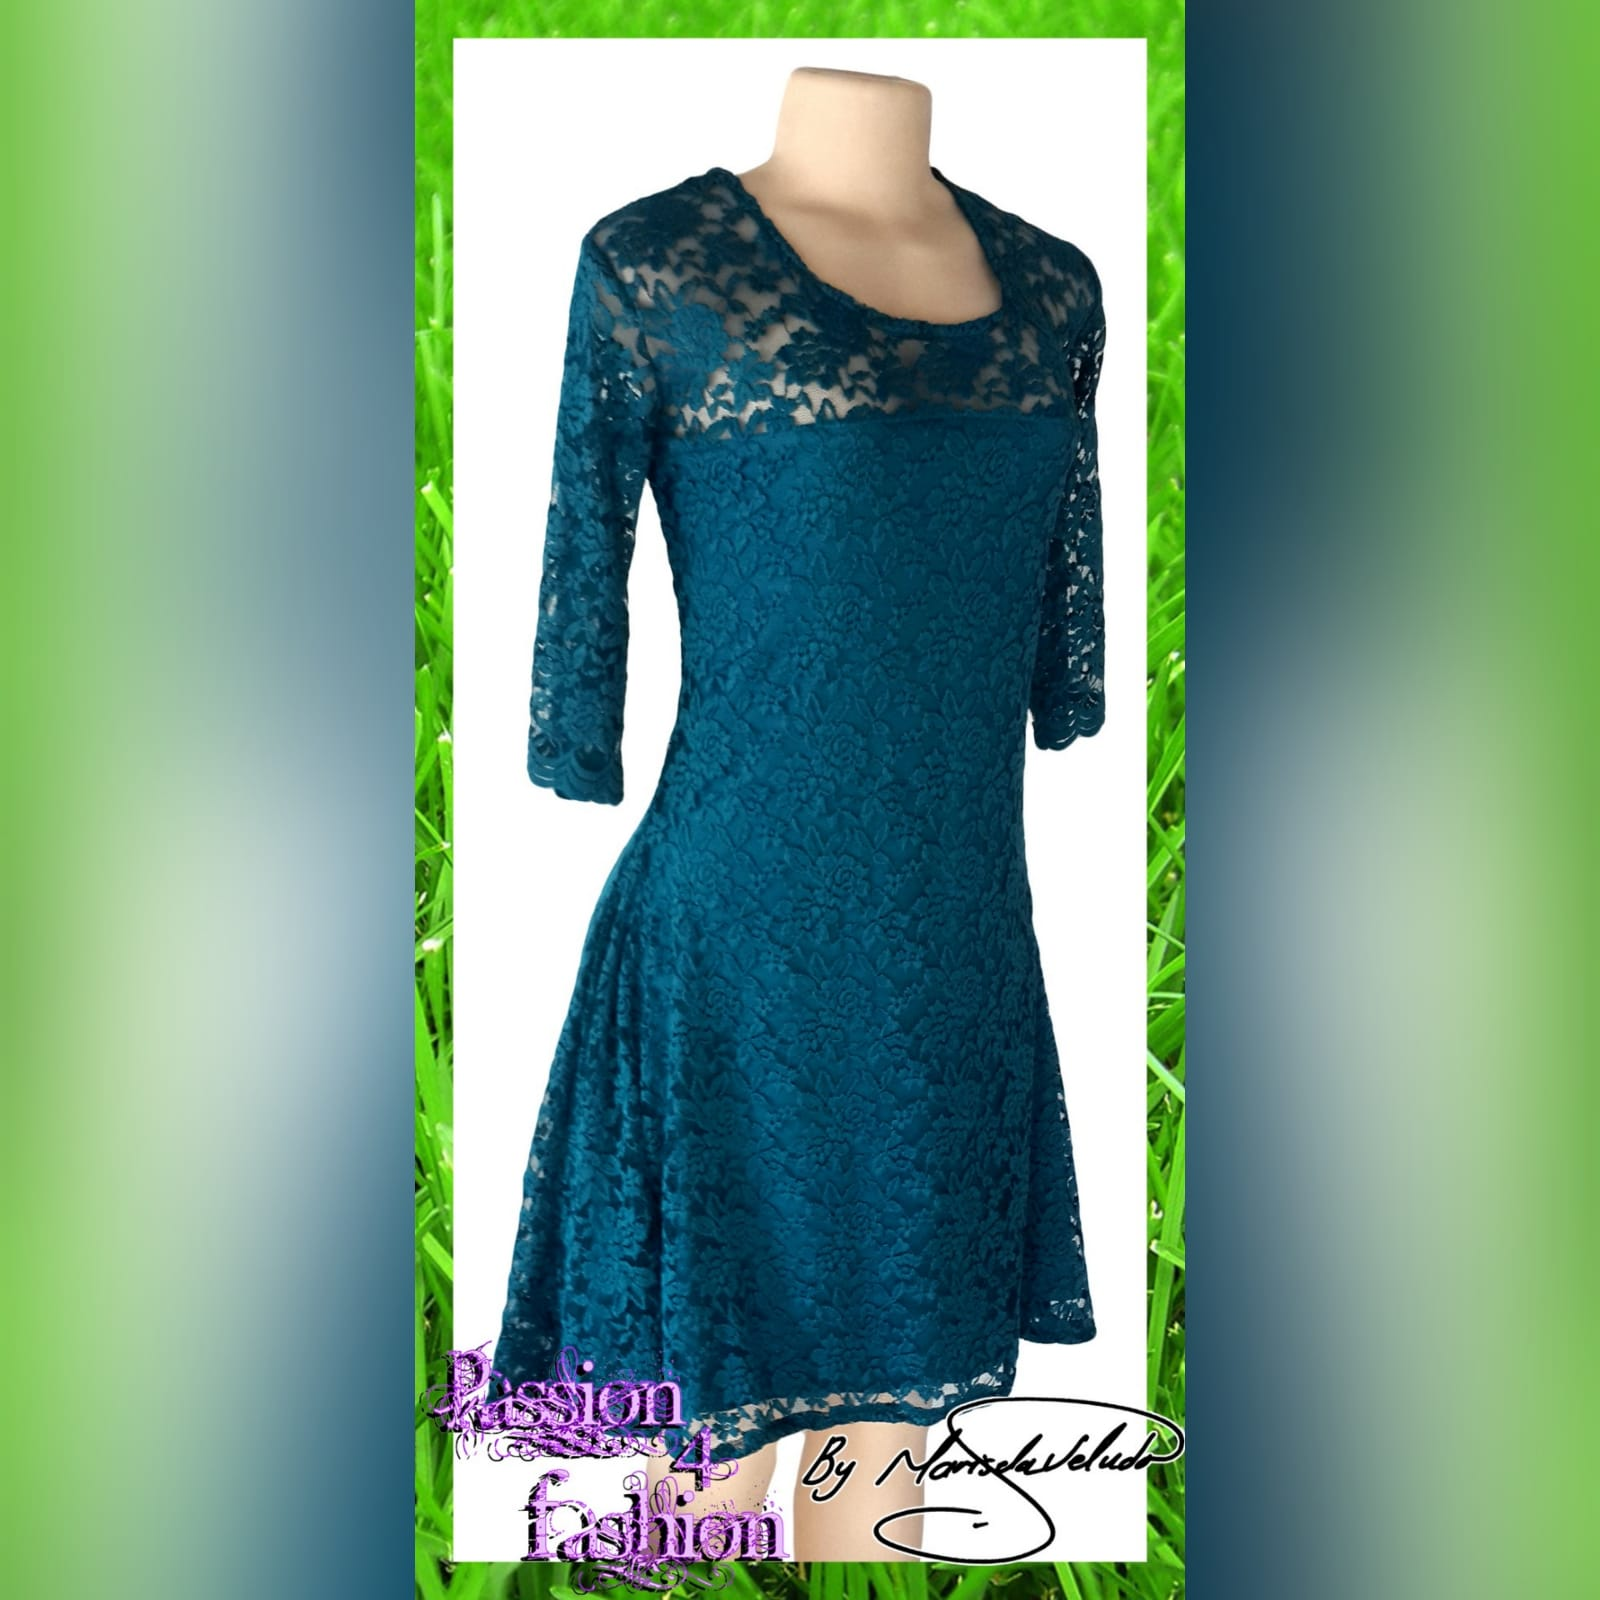 Turquoise blue smart casual knee length lace dress 1 turquoise blue smart casual knee length lace dress, with sheer lace neckline and sleeves.